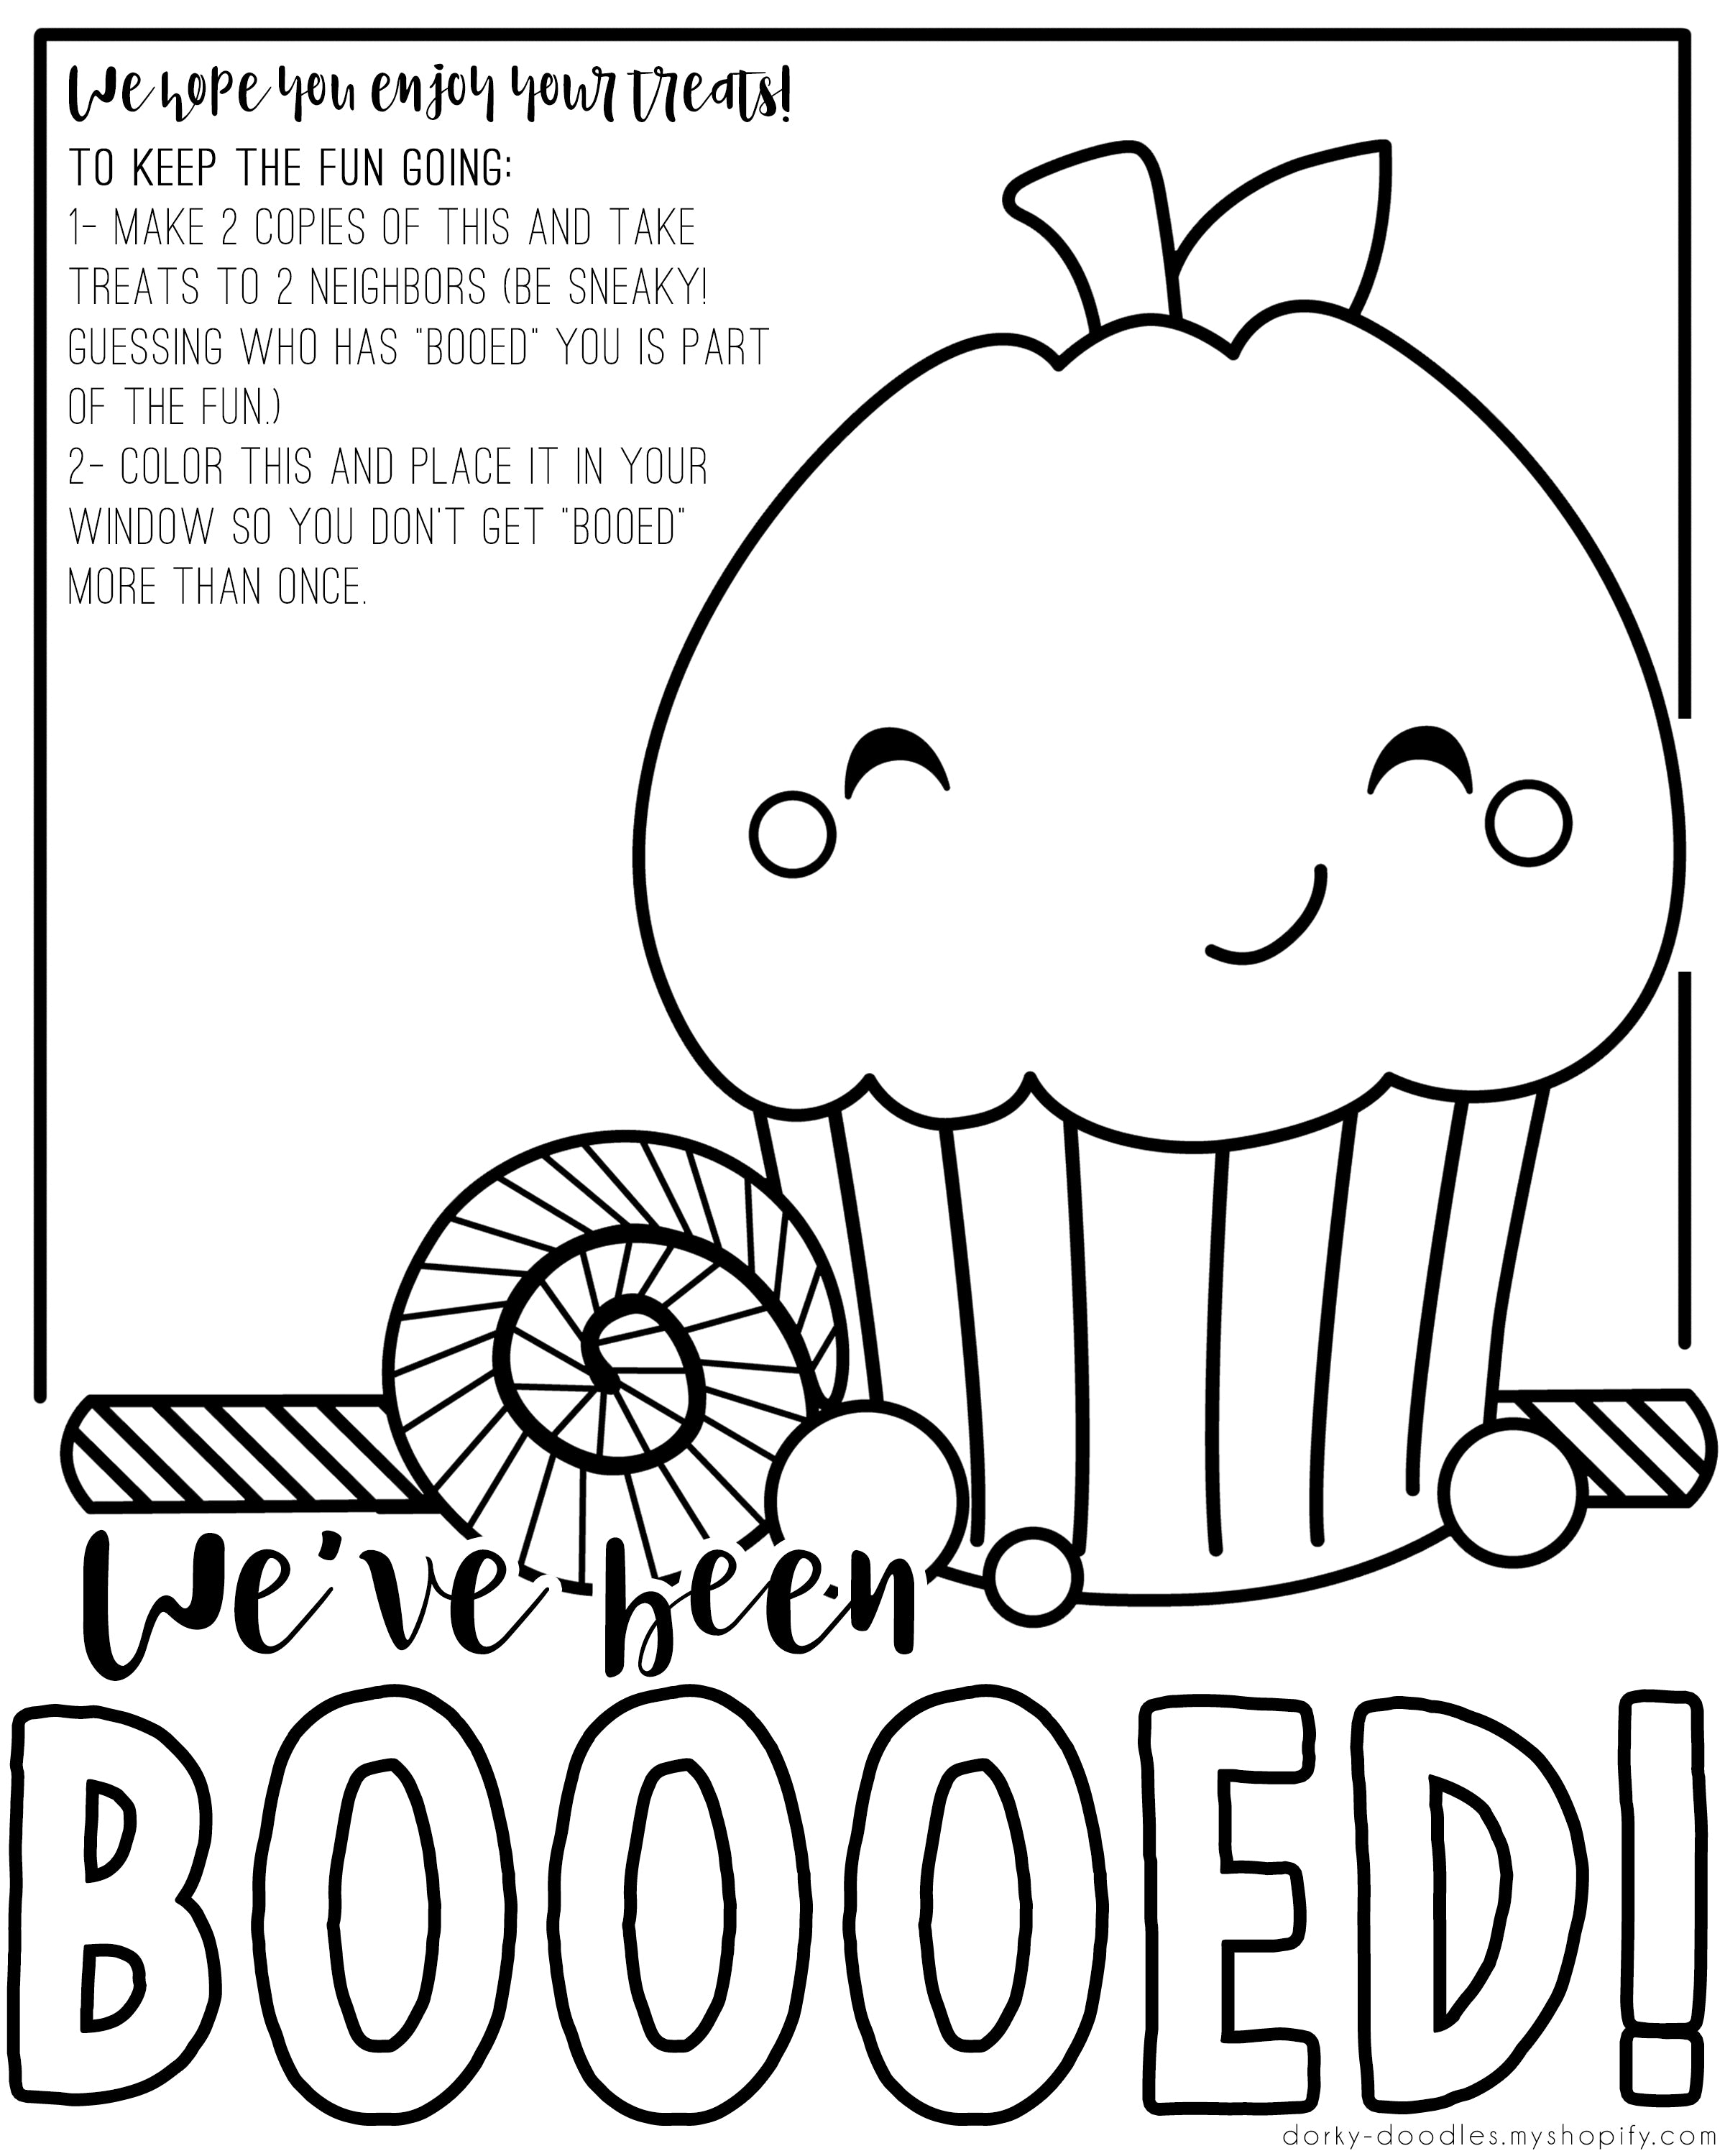 photo relating to We've Been Booed Printable identify Youve Been Booed Printable Dorky Doodles